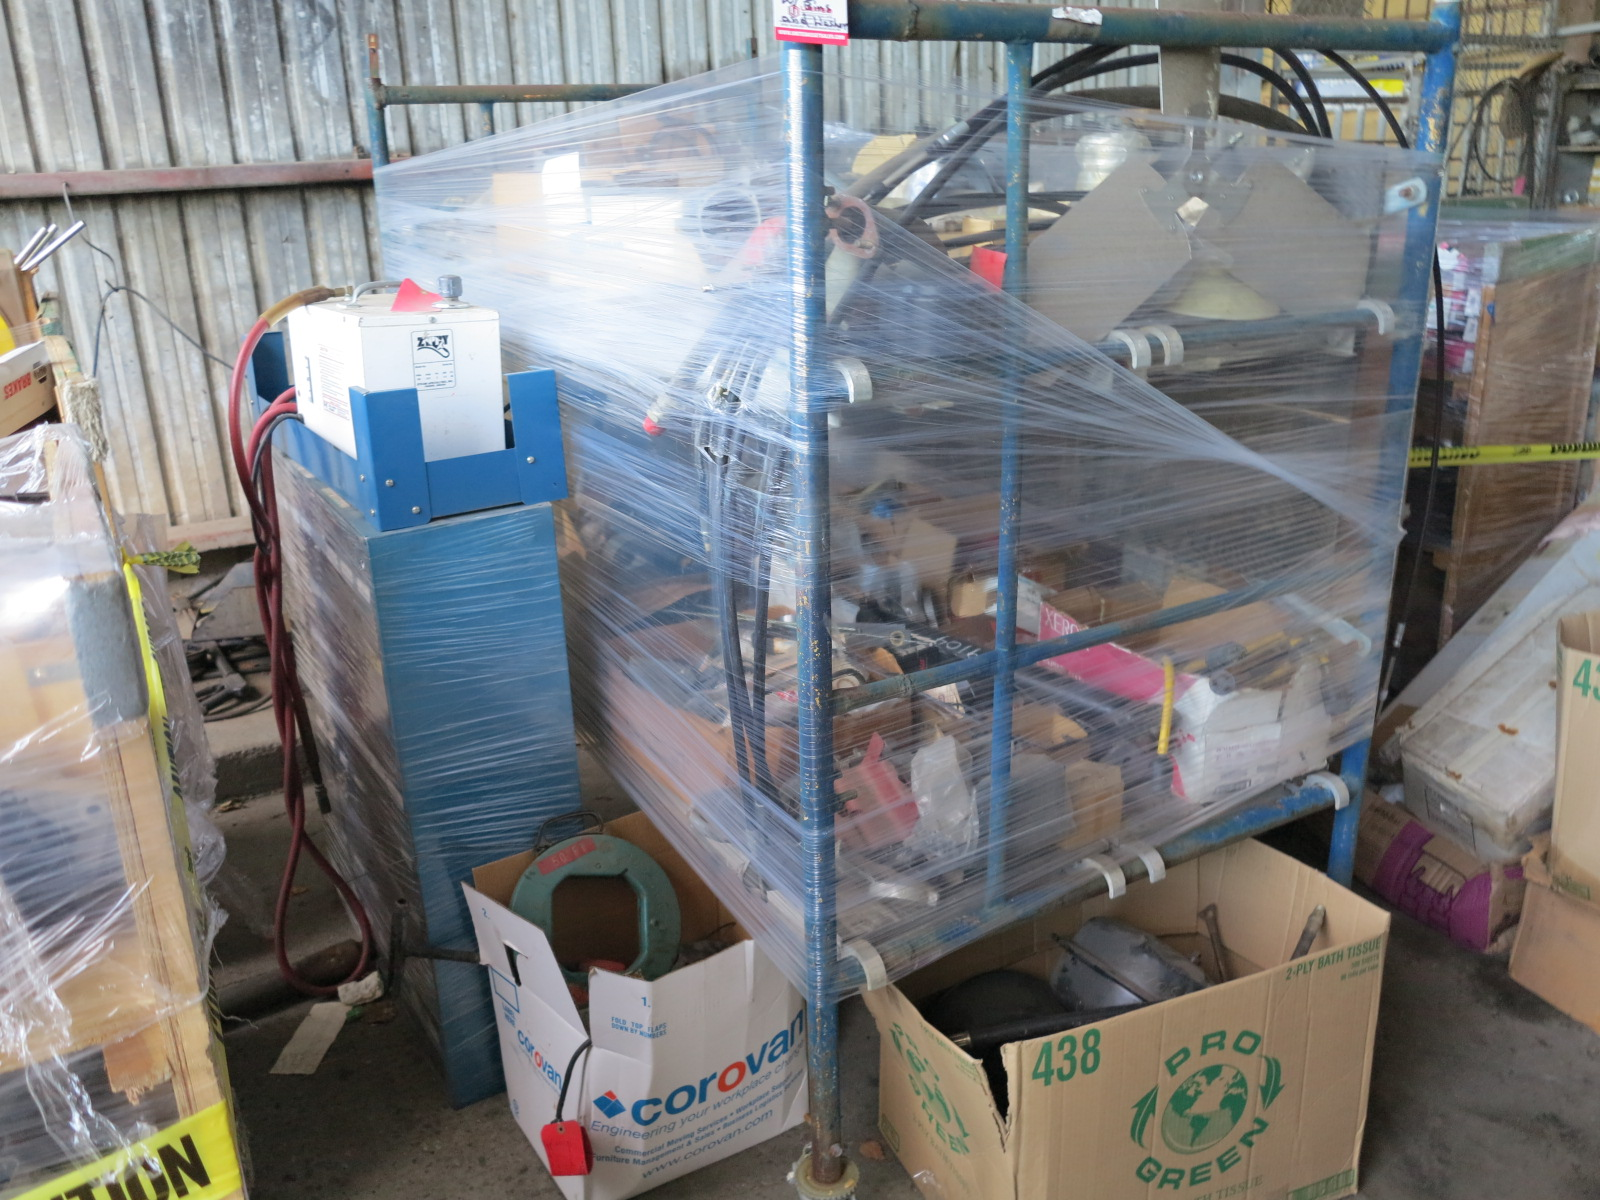 Lot 8 - LOT - SCAFFOLDING, PRESSURE WASHER (OUT OF SERVICE), PARTS BIN AND MISC ITEMS